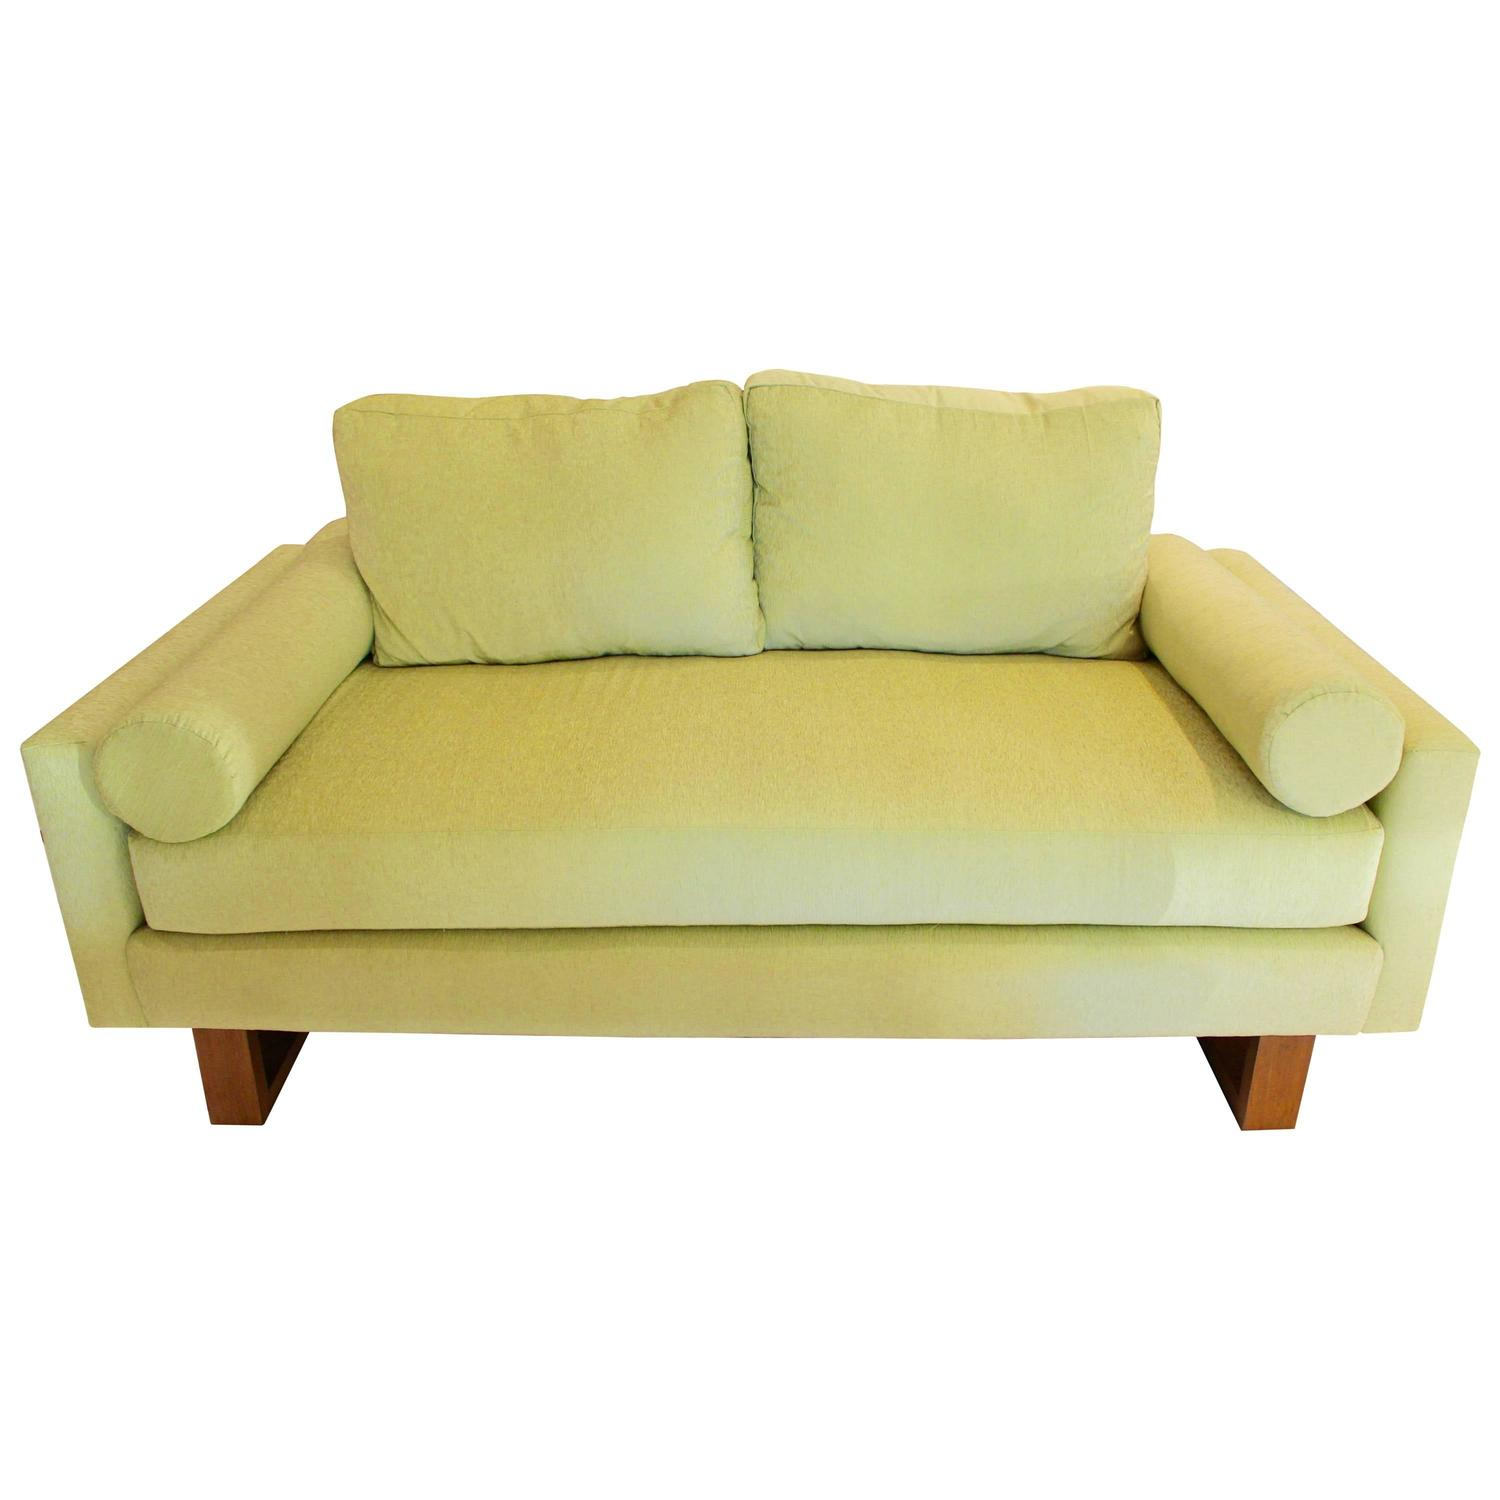 lime green chairs for sale recliner chair arm covers mid century sofa at 1stdibs